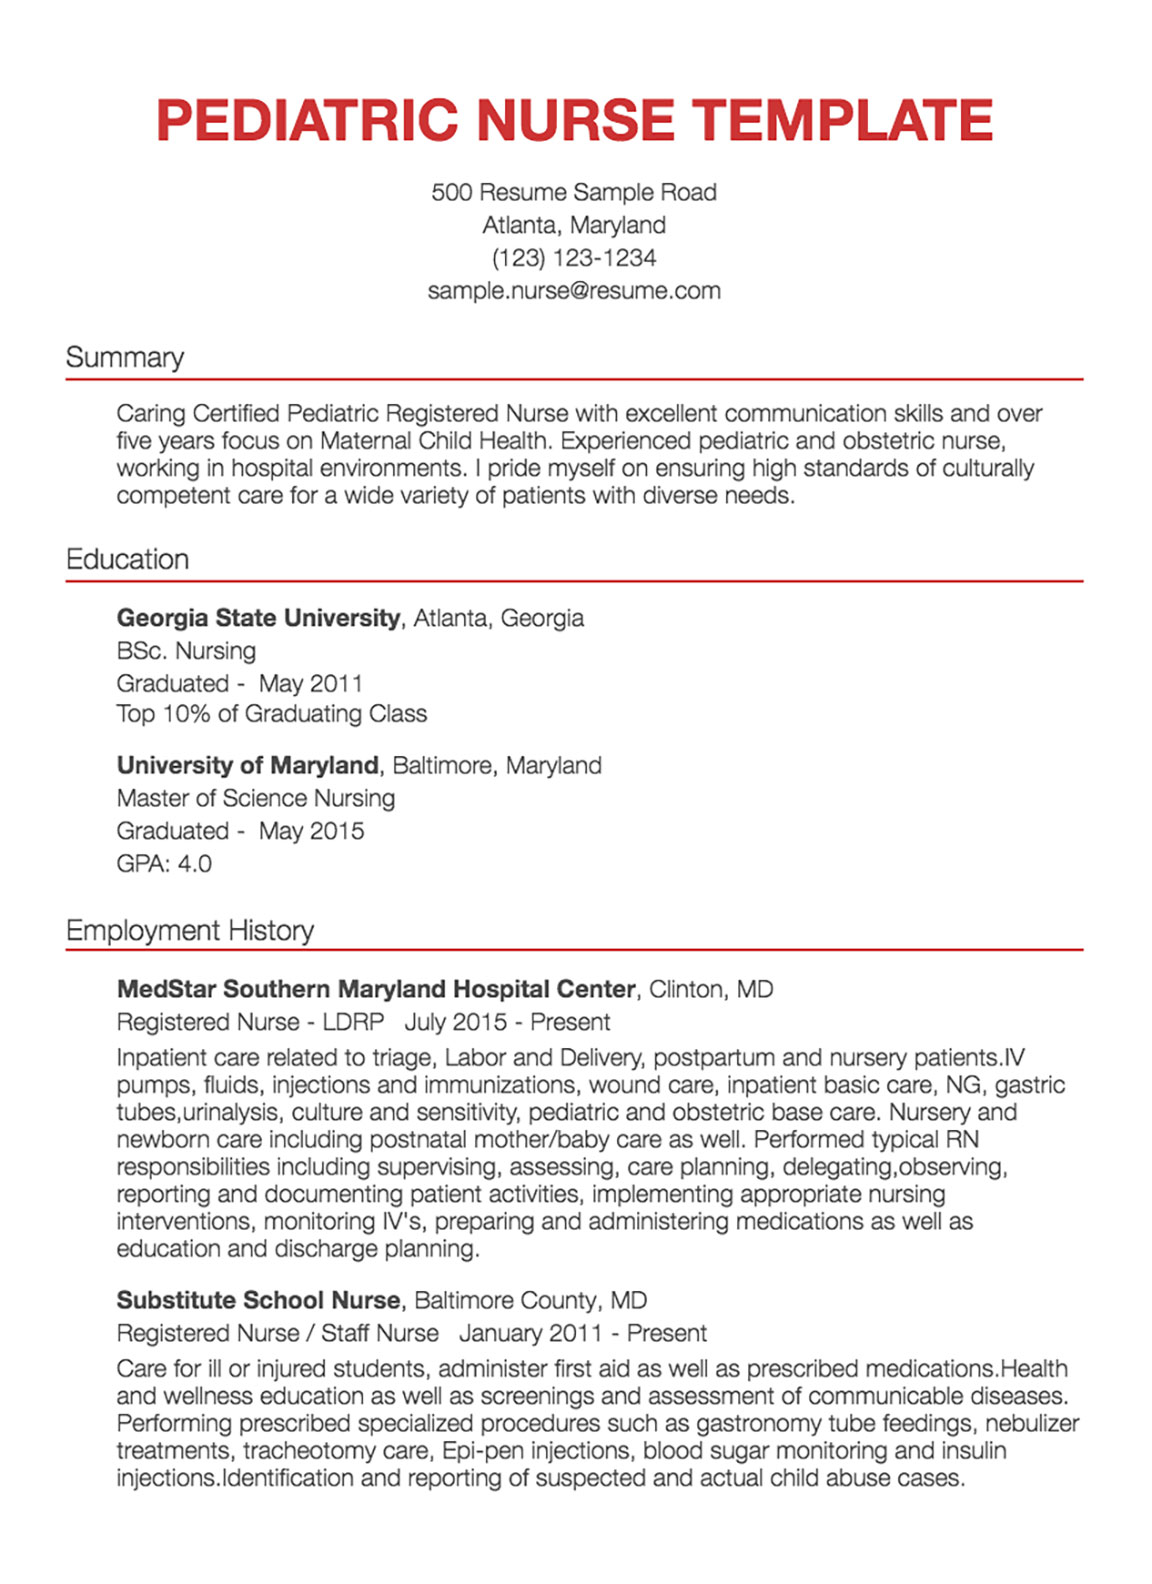 Nursing Resume Template Resumecom - Example-of-nursing-resume